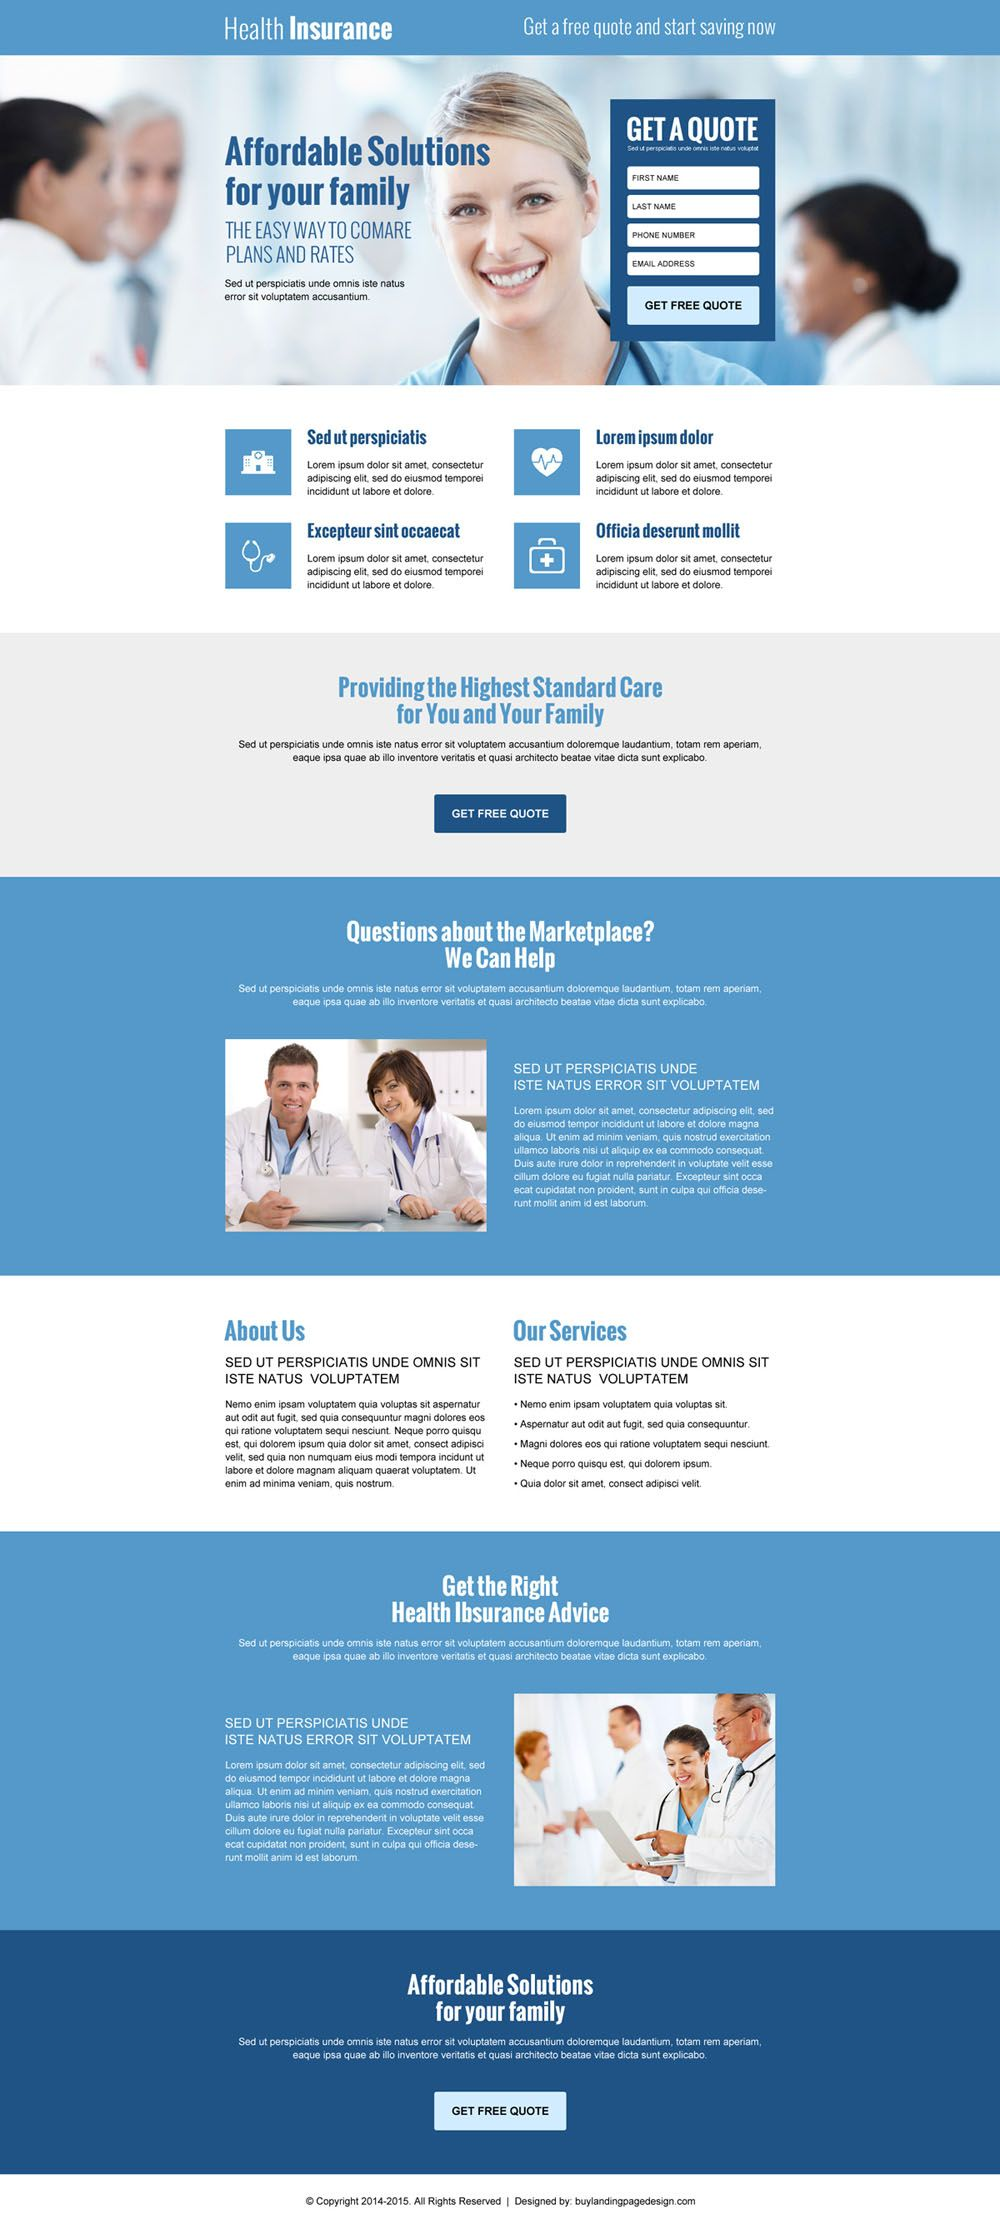 Lead Capture Converting Landing Page Design For Health Insurance